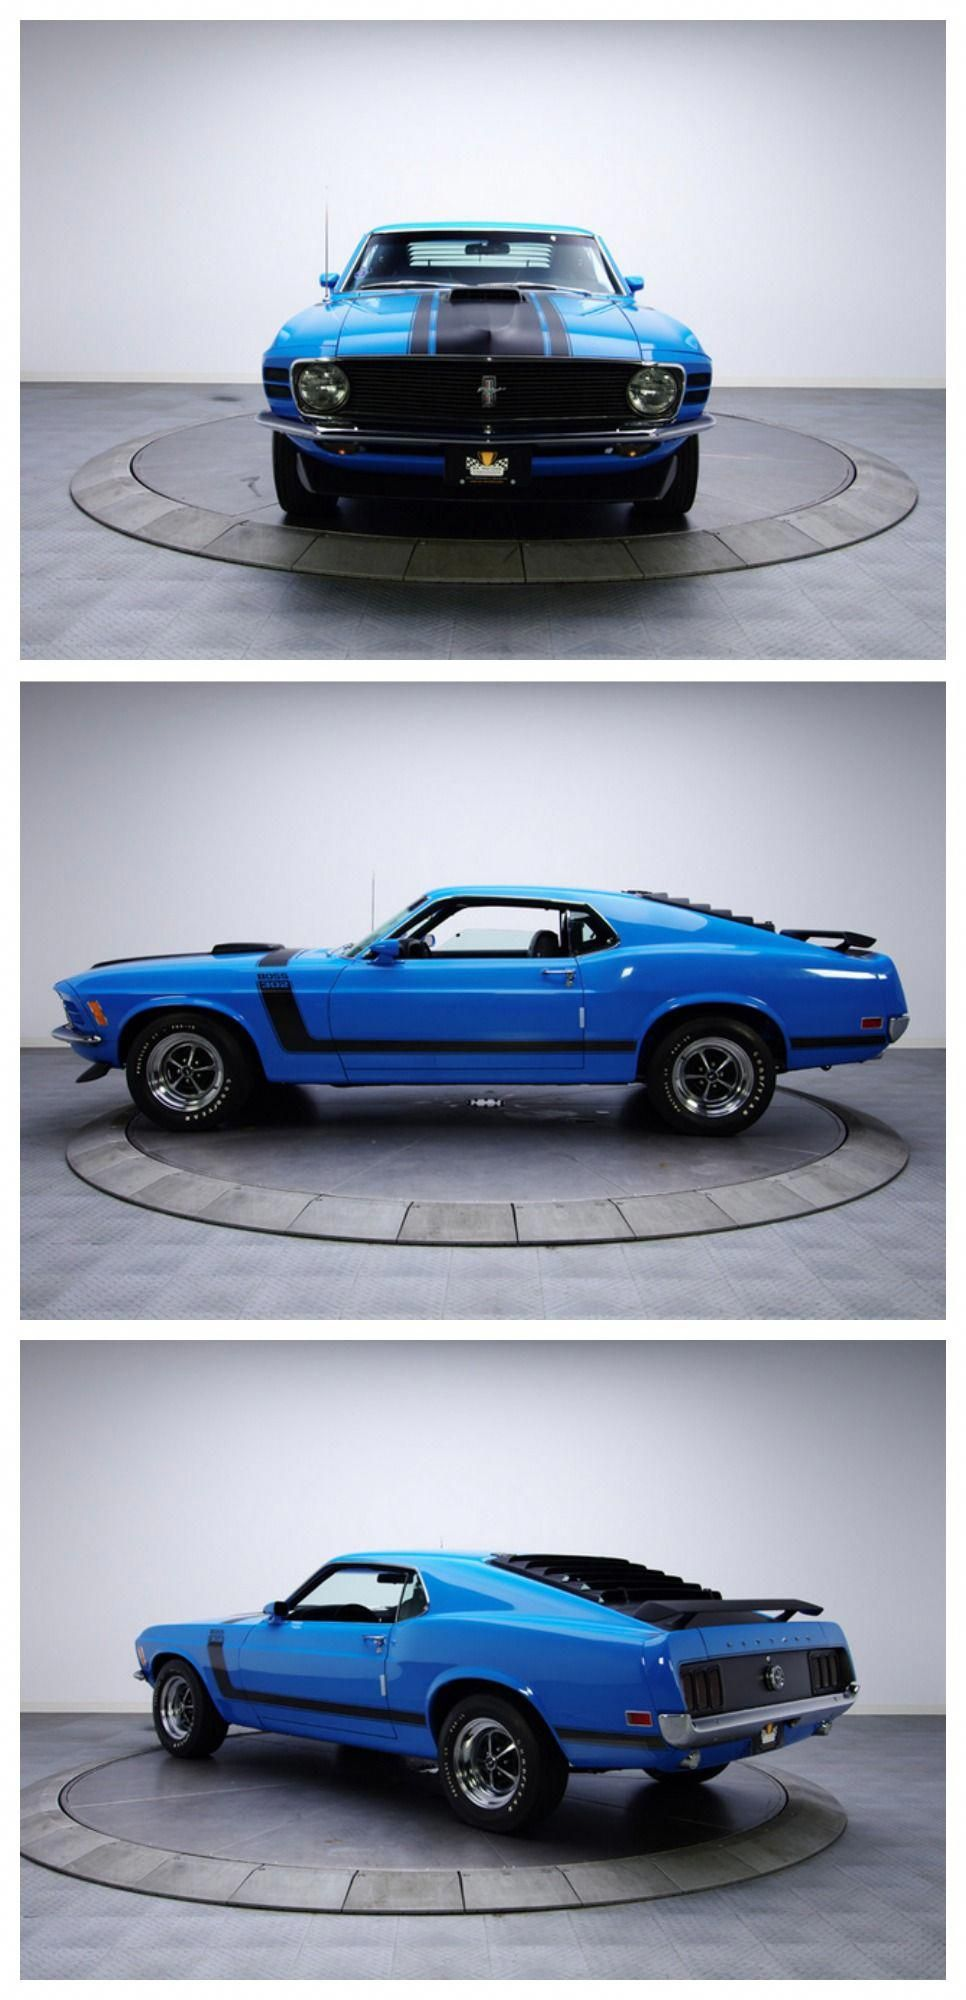 A RARE thoroughbred Ford Mustang Boss 302 MusclecarMonday